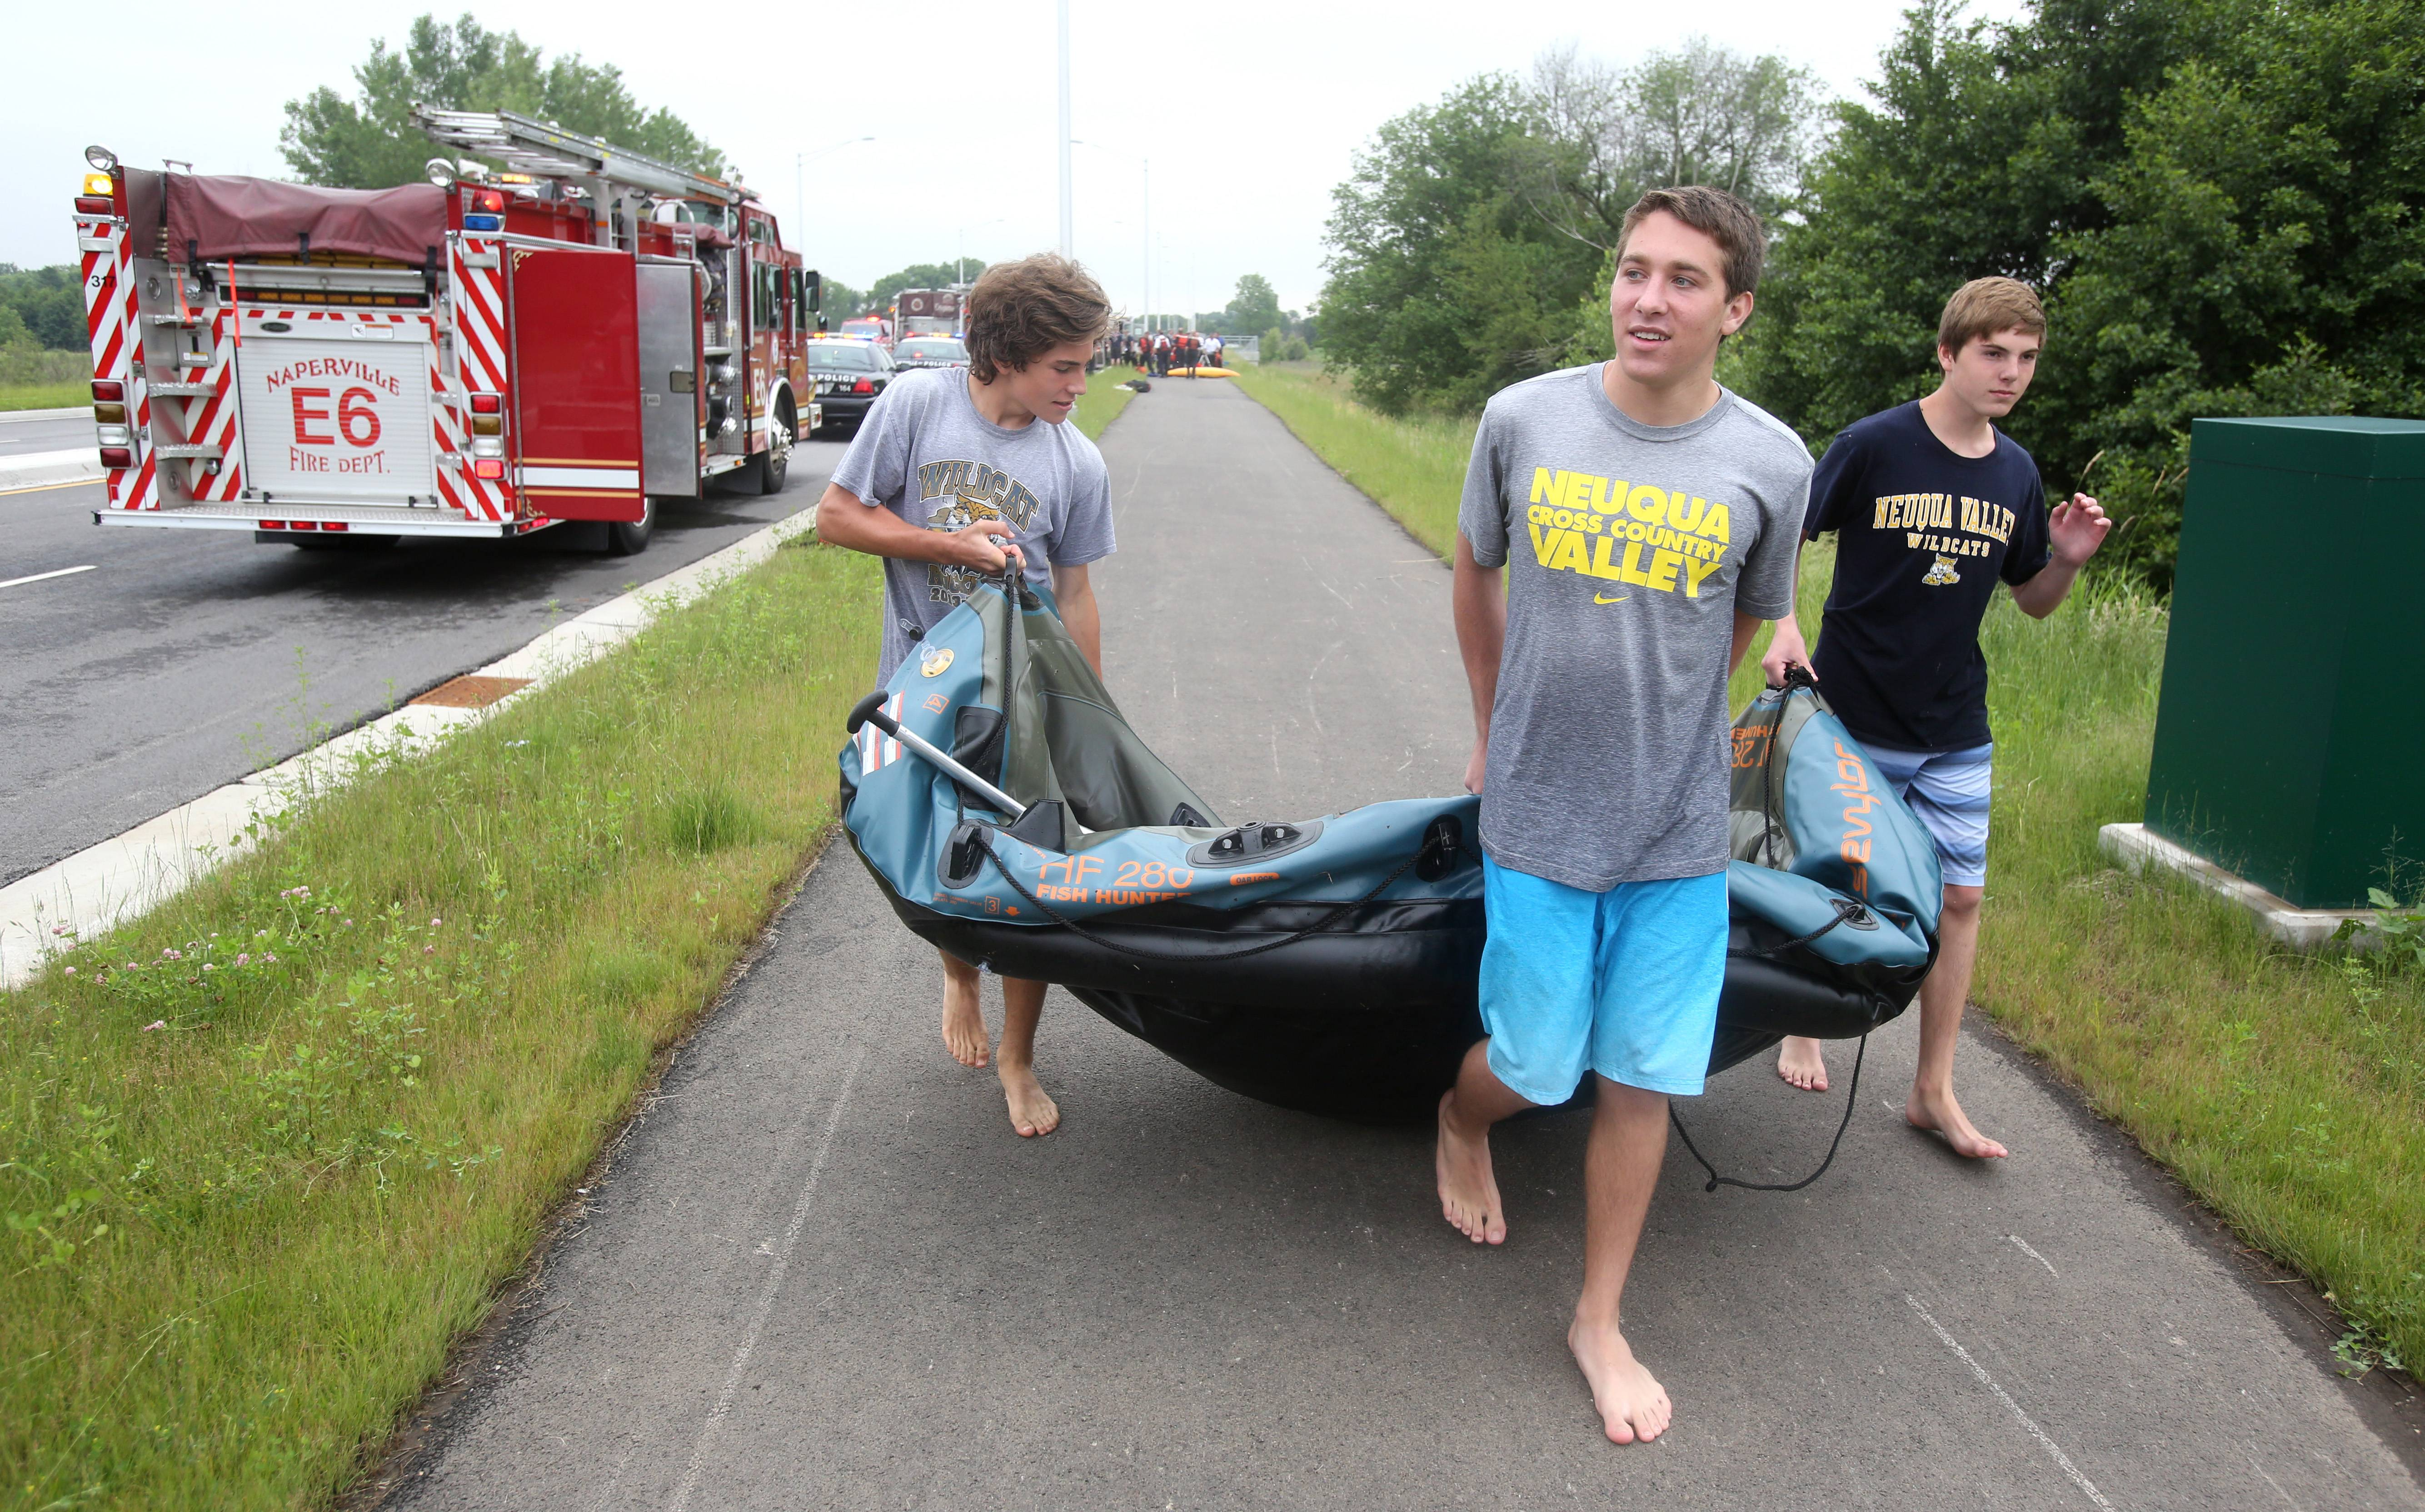 Third rescue in 2 days from DuPage River in Naperville